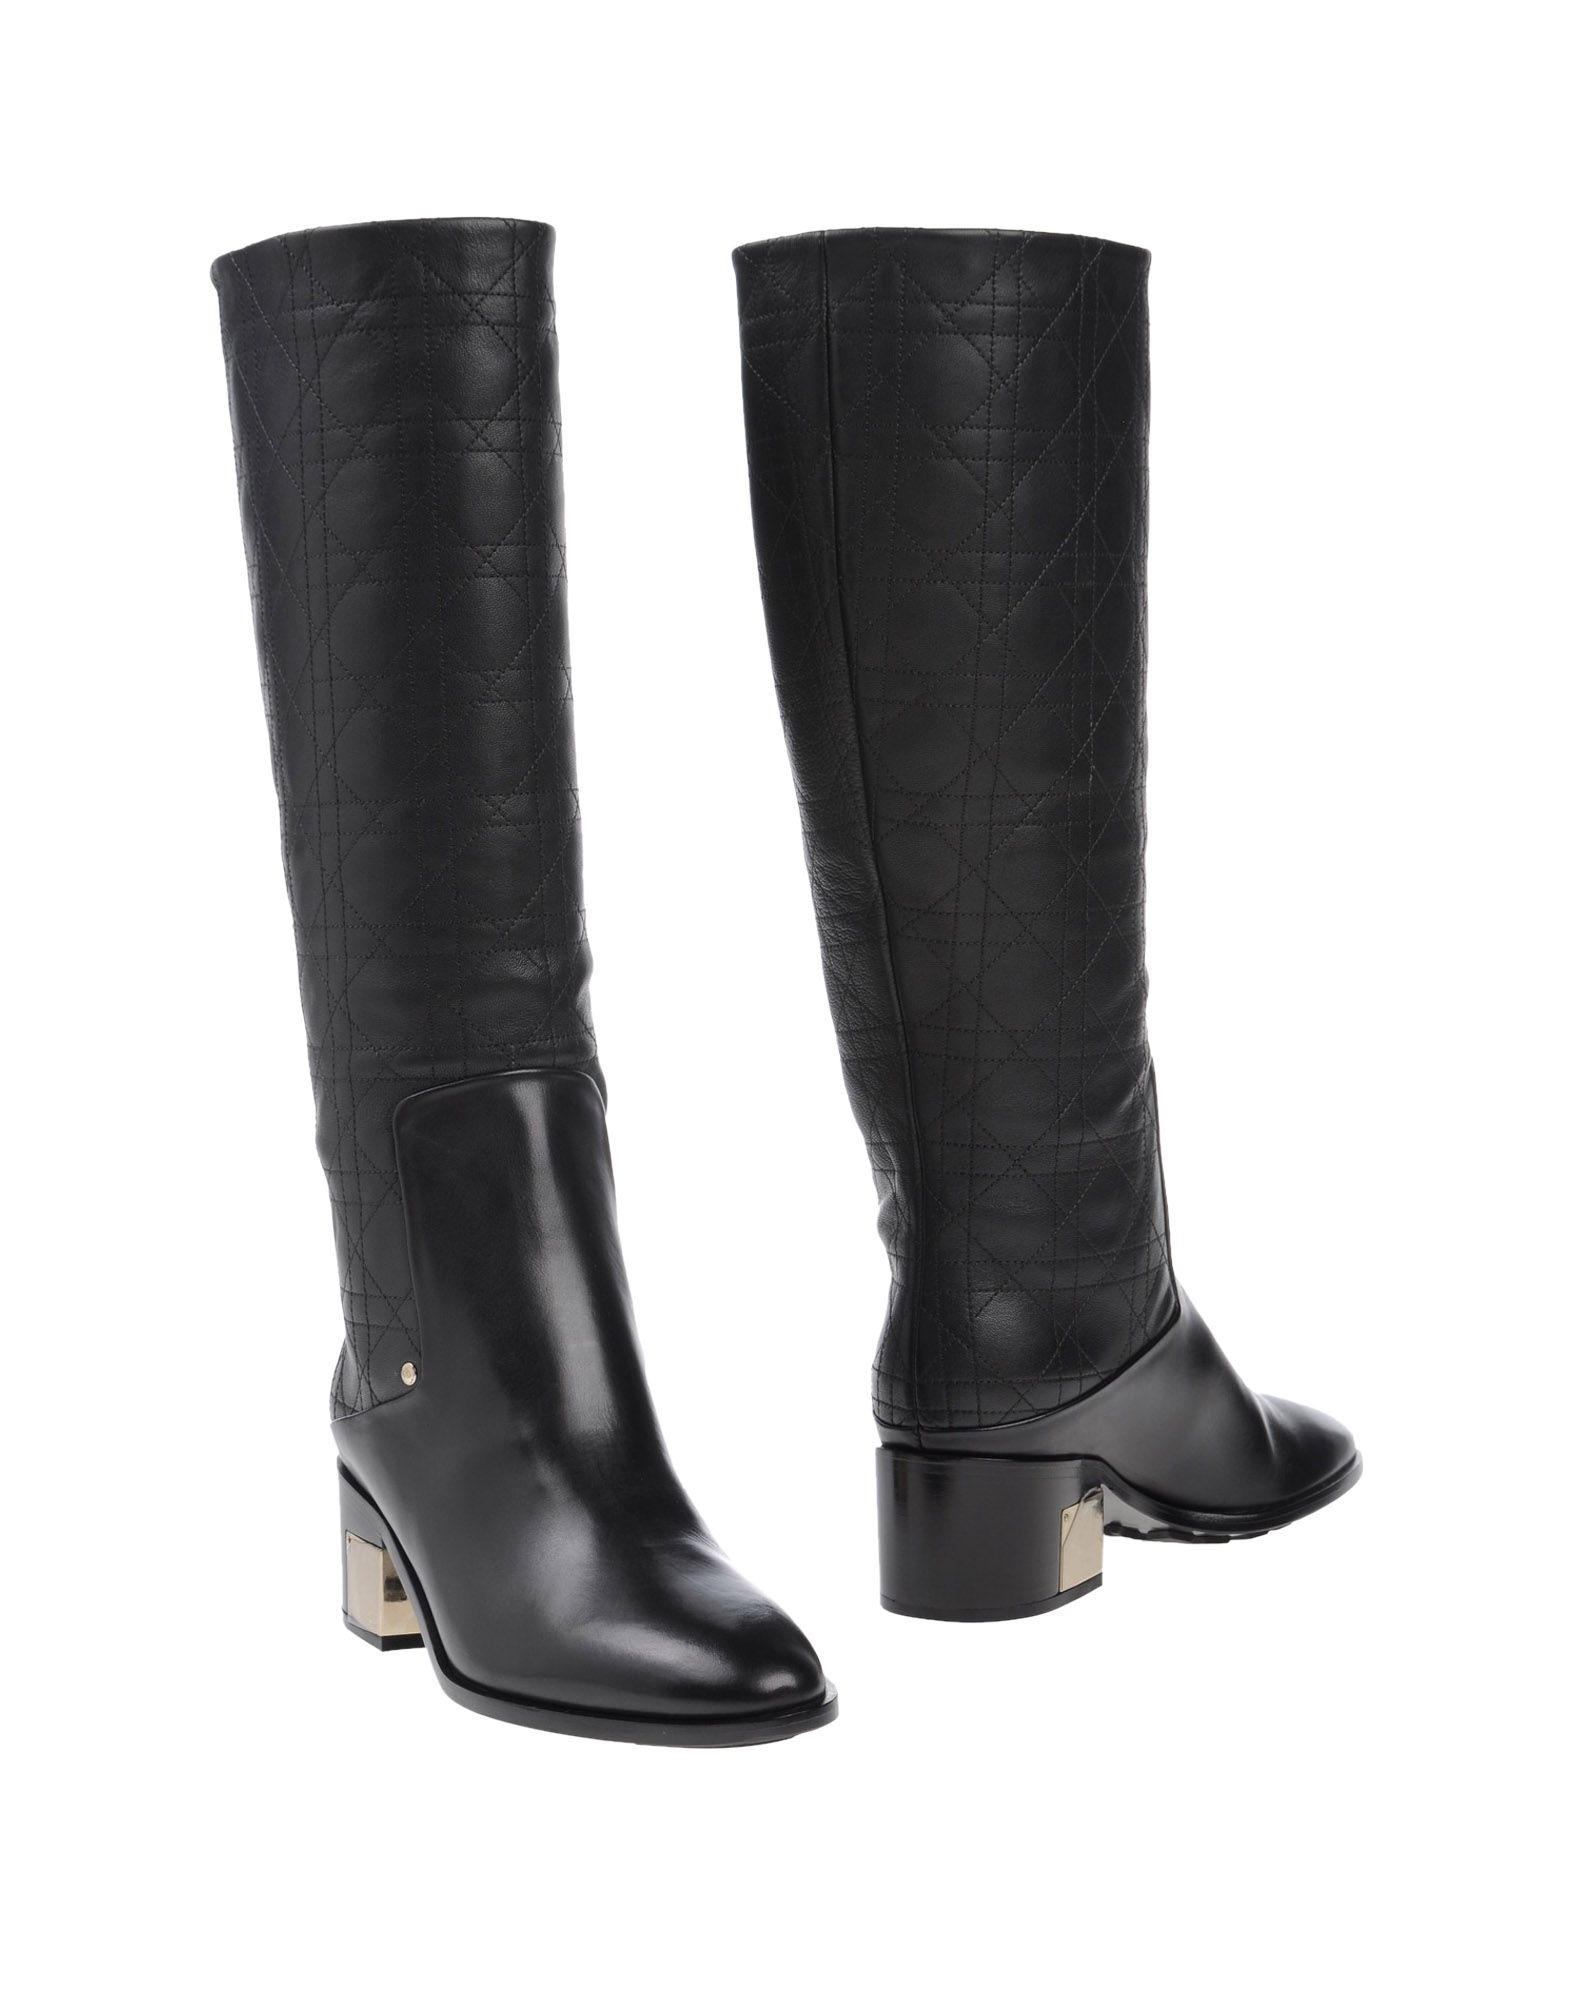 Dior Boots in Black